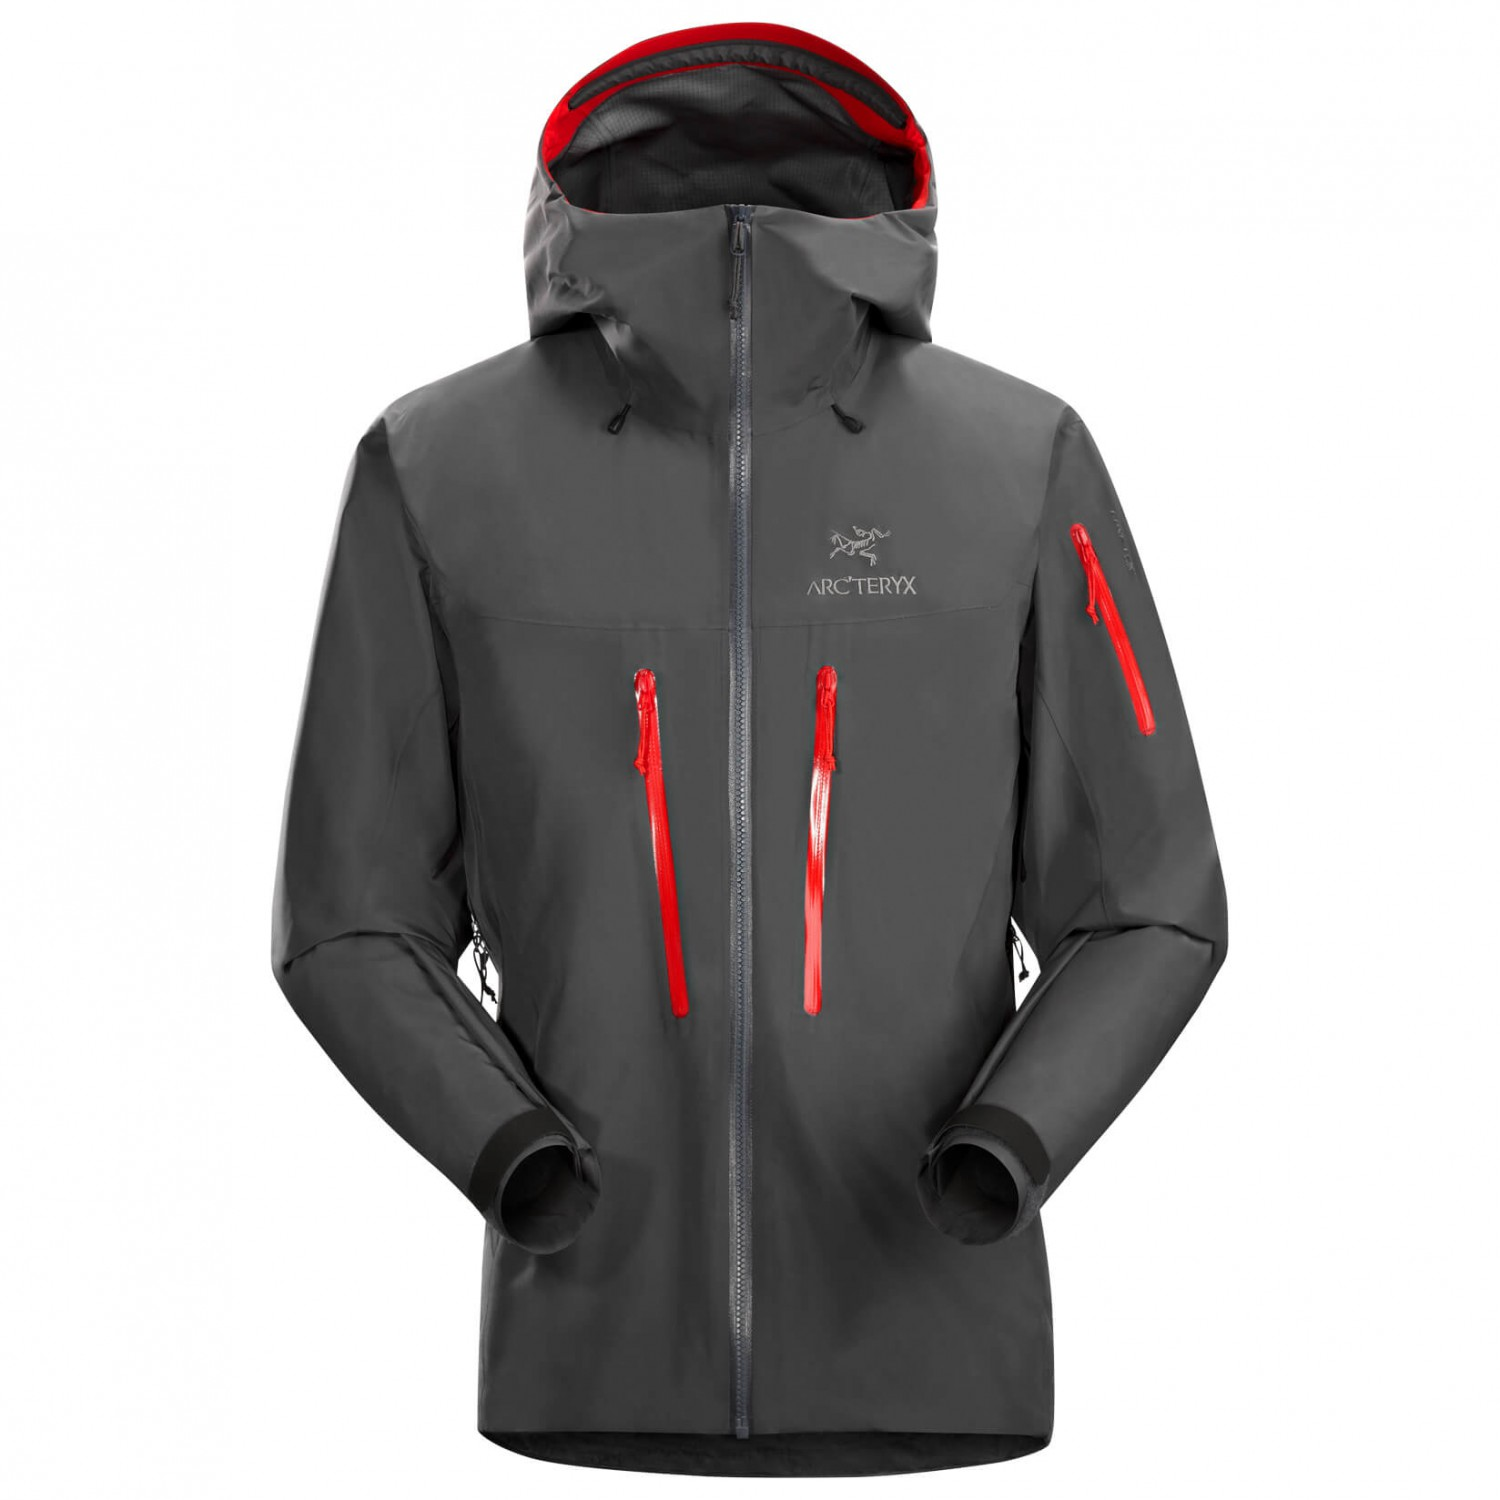 fa85bbfecec Arc'teryx Alpha SV Jacket - Waterproof Jacket Men's | Free UK ...